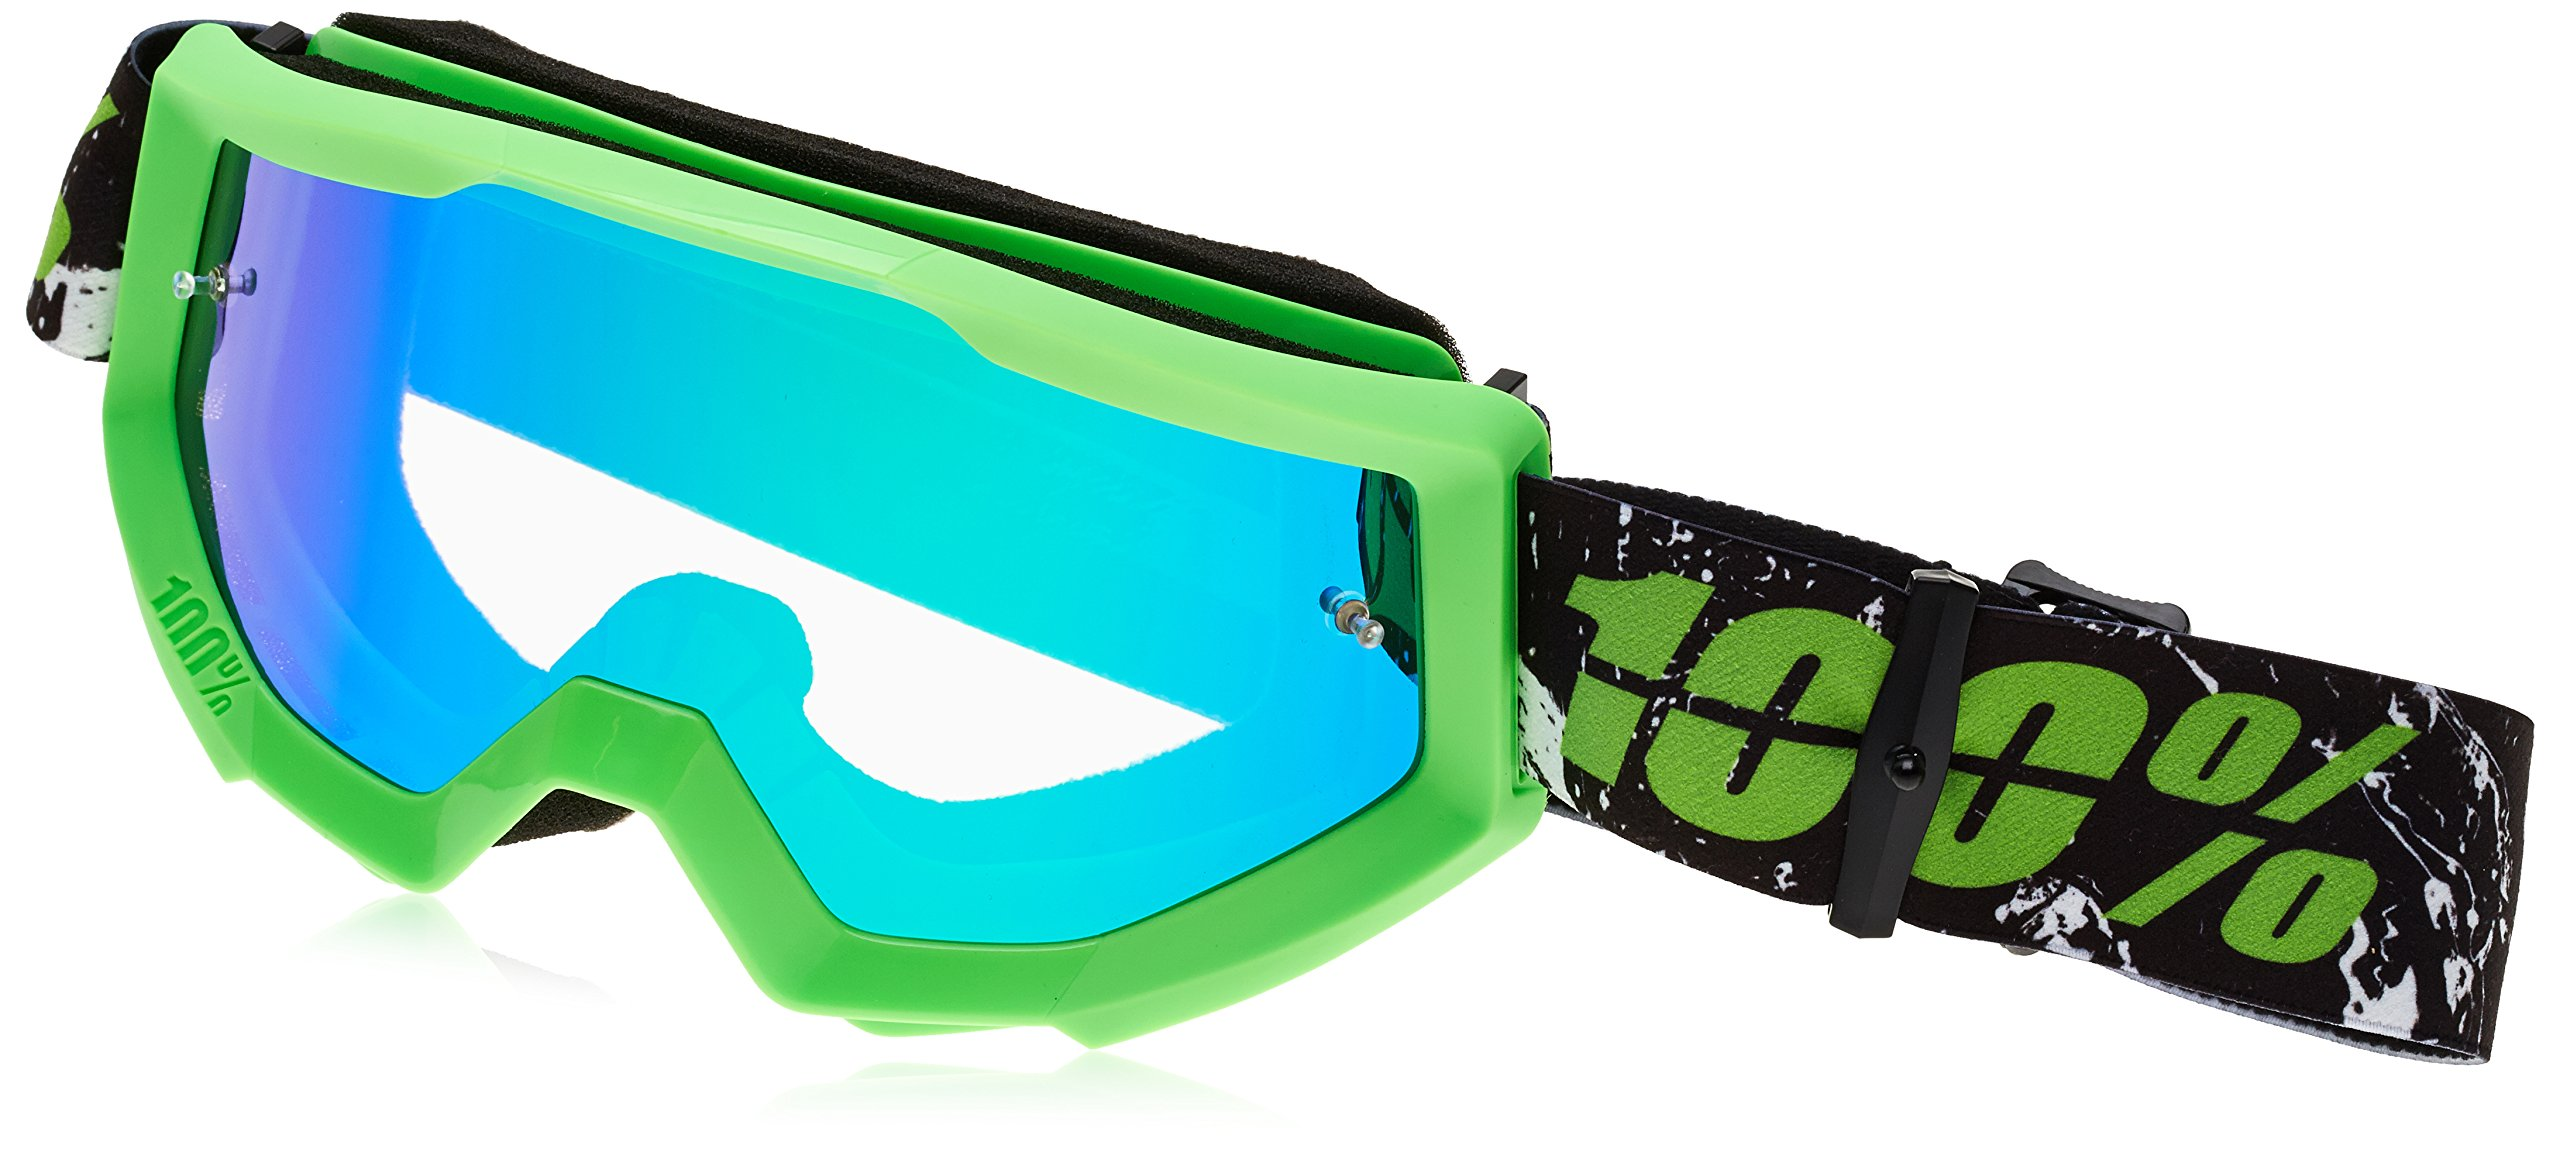 100% unisex-adult Goggle (Green,Mirror Green,One Size) (STRATA MX STRATA LIME Mirror Lens Green)